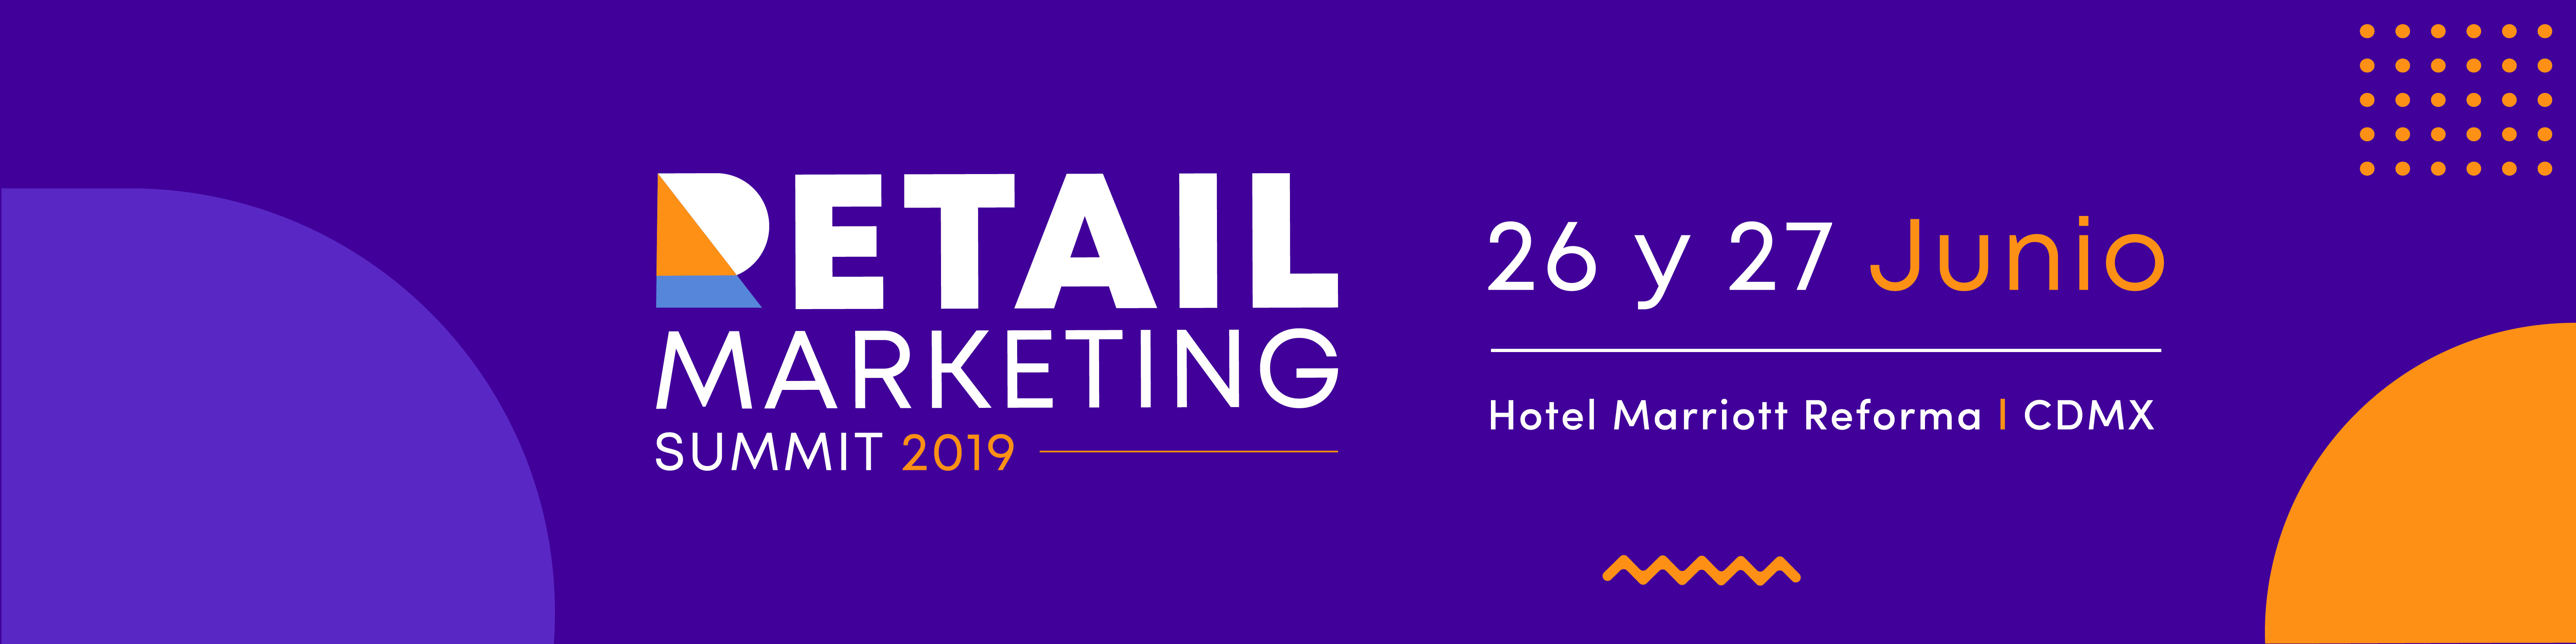 Conoce lo más relevante del Retail Marketing Summit 2019